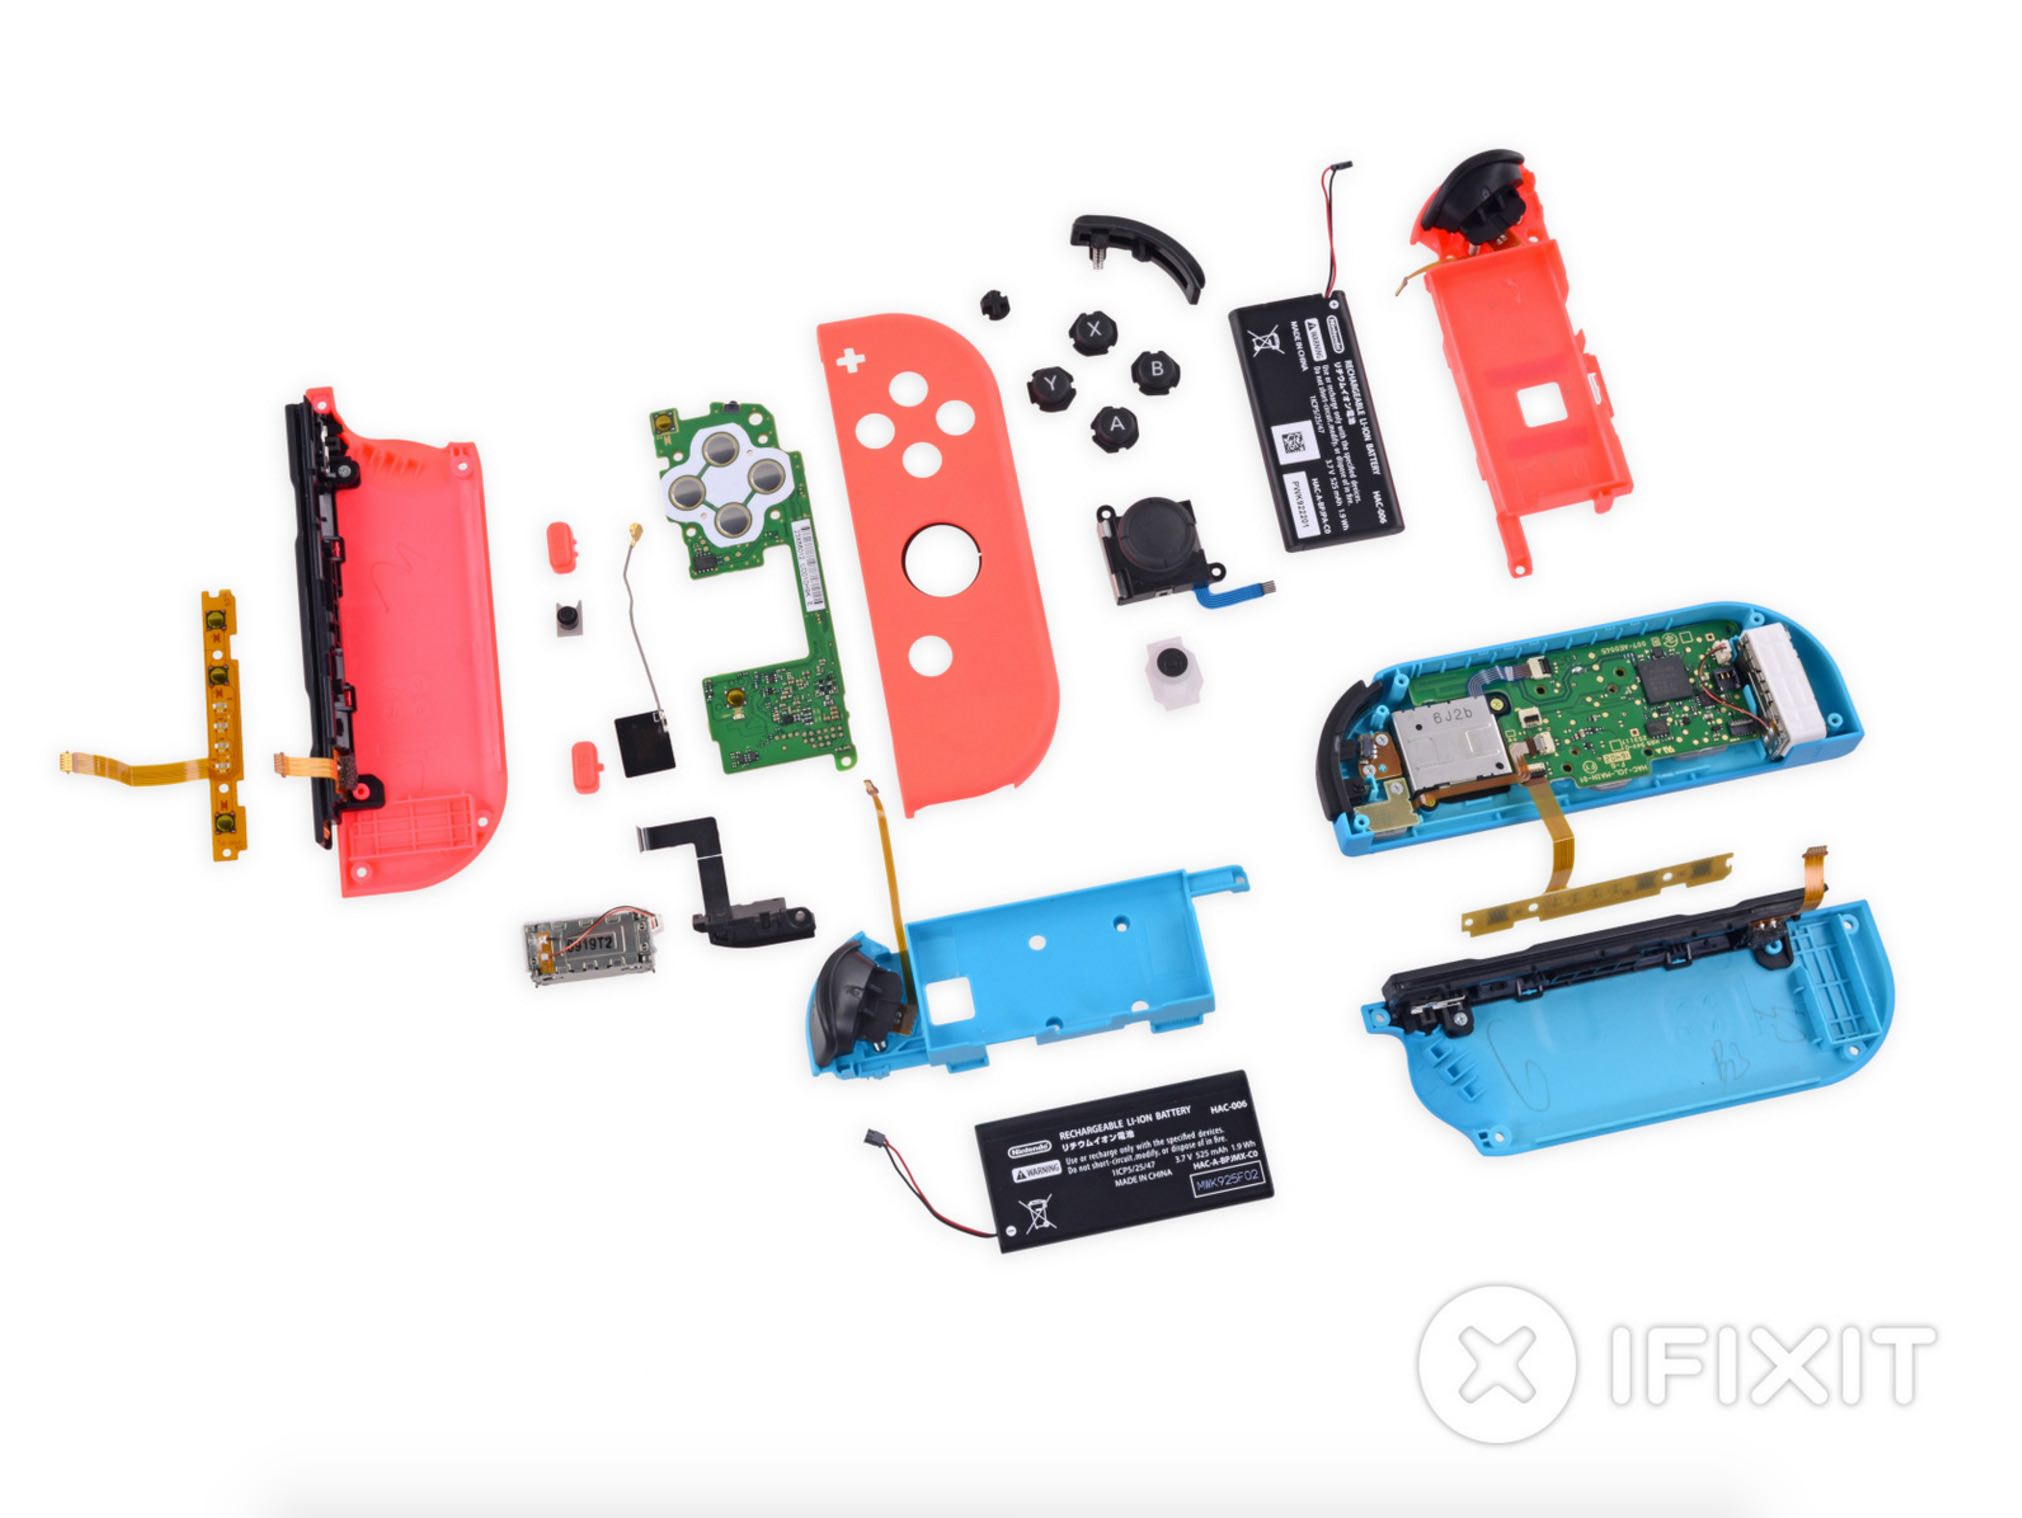 Switch Joy-con controllers disassembled